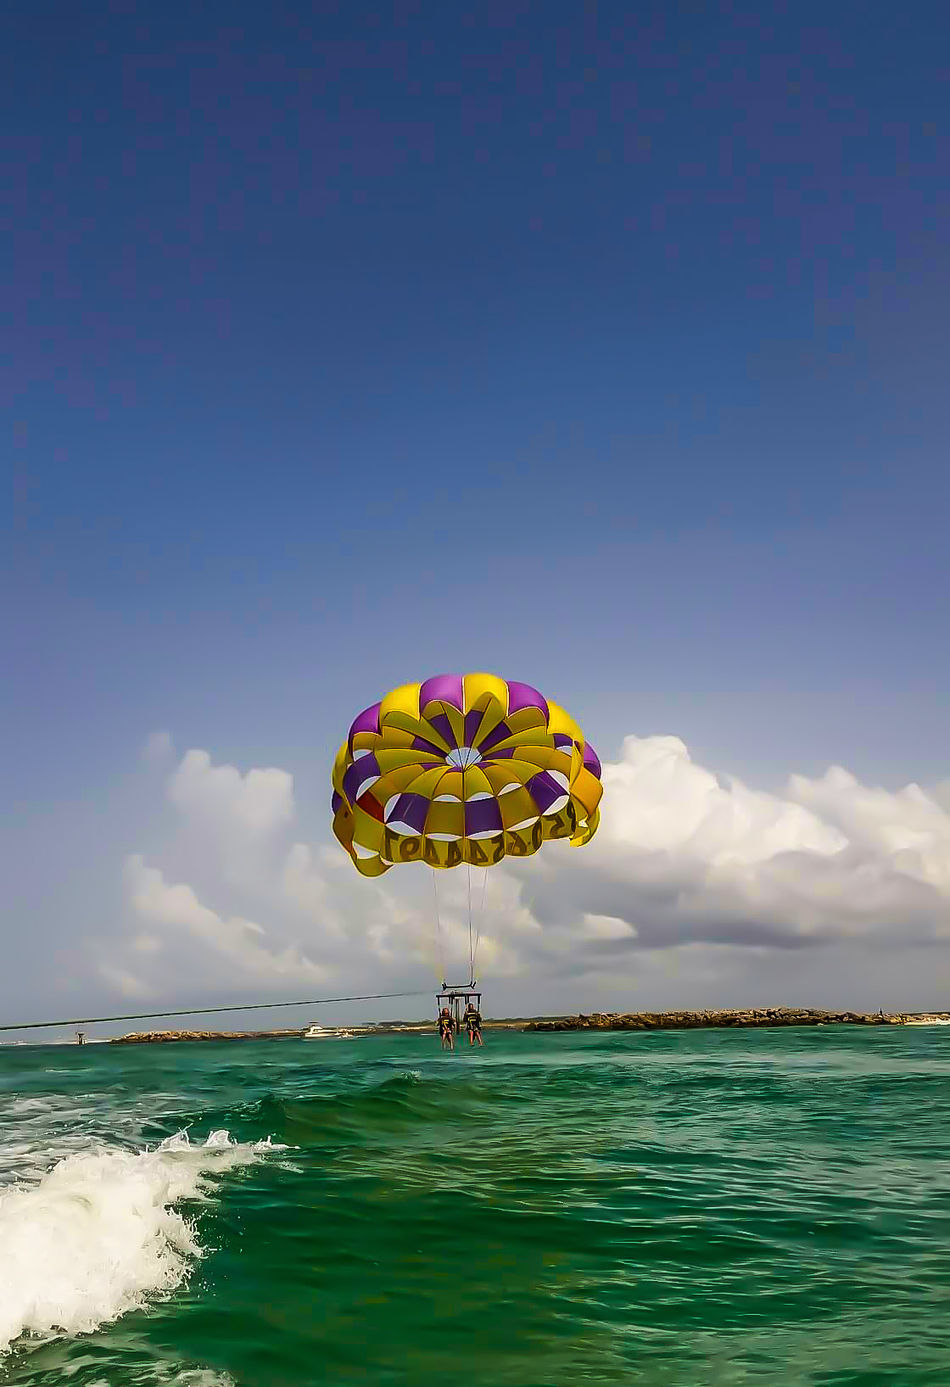 Sea Scenics Leisure Activity Business Finance And Industry Sunset Yellow Child Beach Outdoors Water Sky Multi Colored Vacations Recreational Pursuit Cloud - Sky Beauty In Nature Hot Air Balloon Nature Parachute Day Parasailing Parachuting Water Activities Outdoor Activities Beach Life